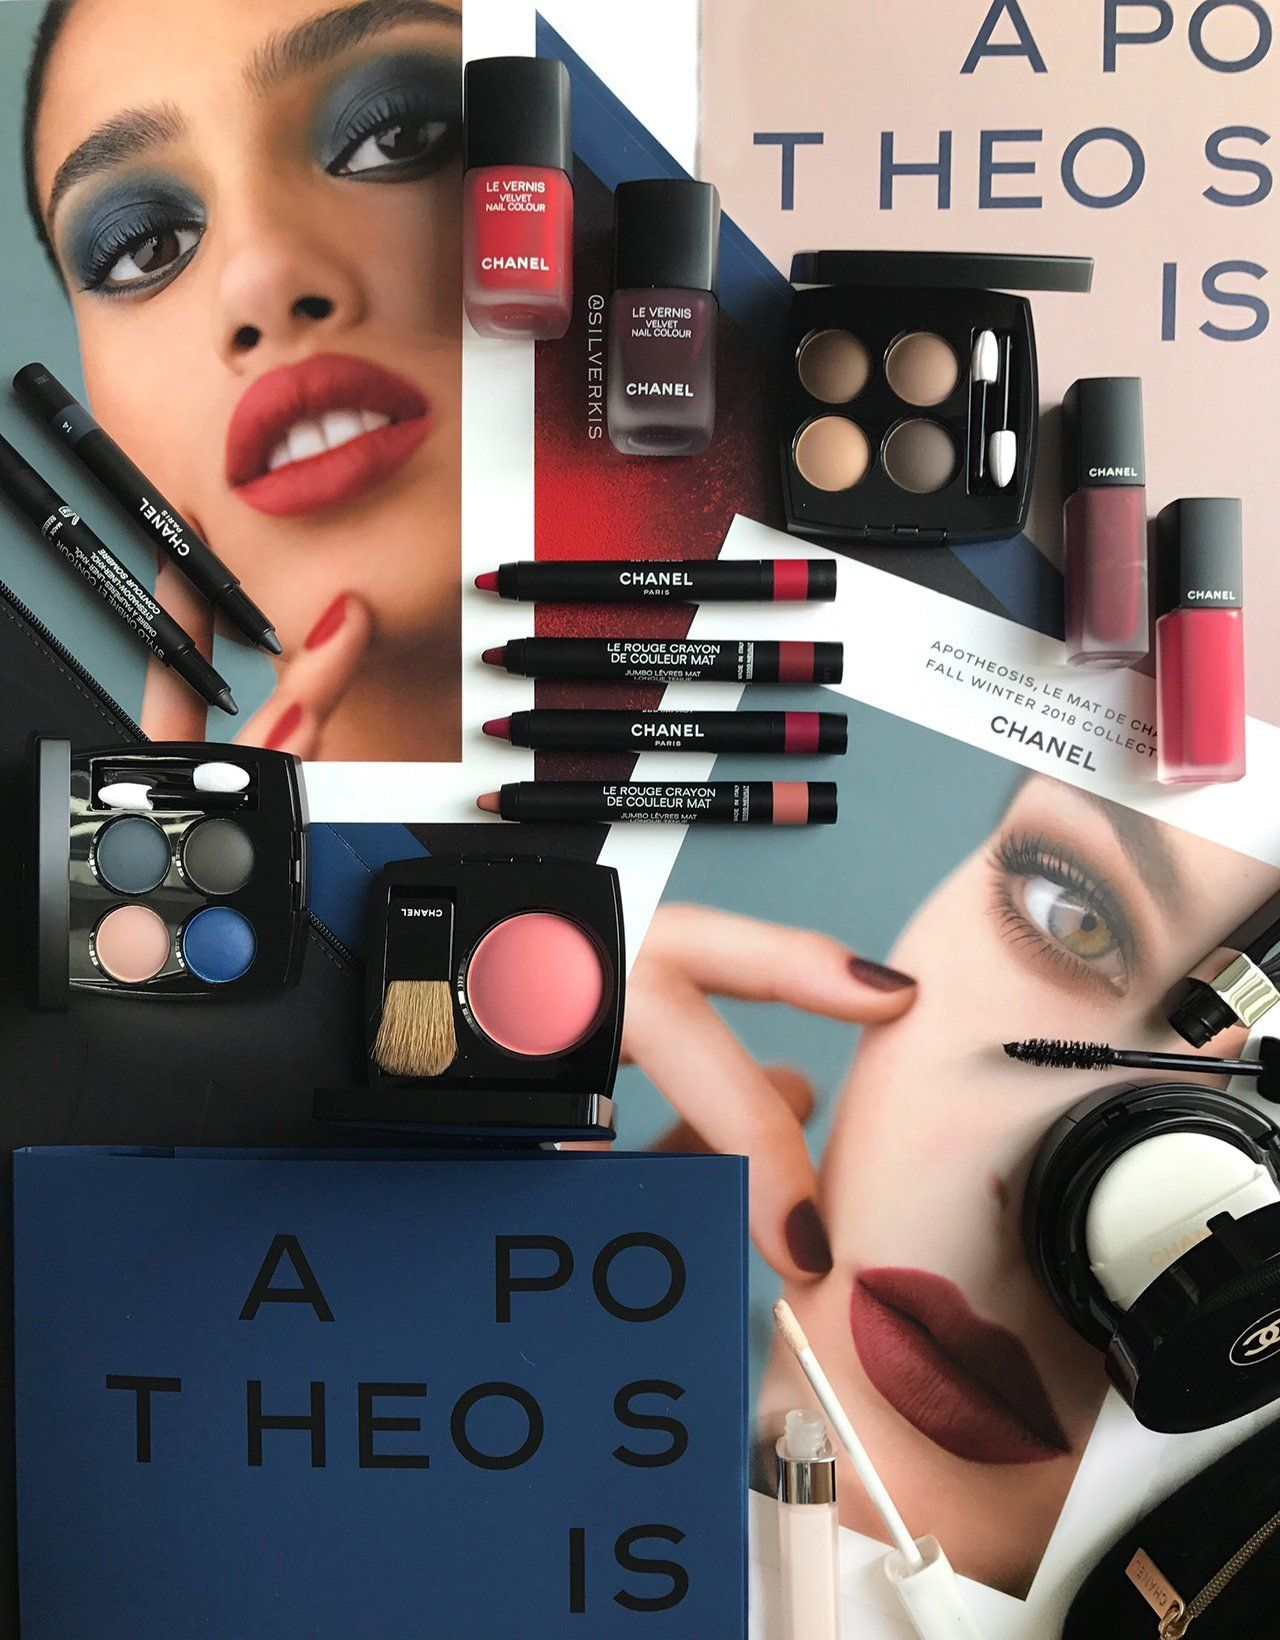 Chanel Apotheosis Fall 2018 Makeup Collection With Images